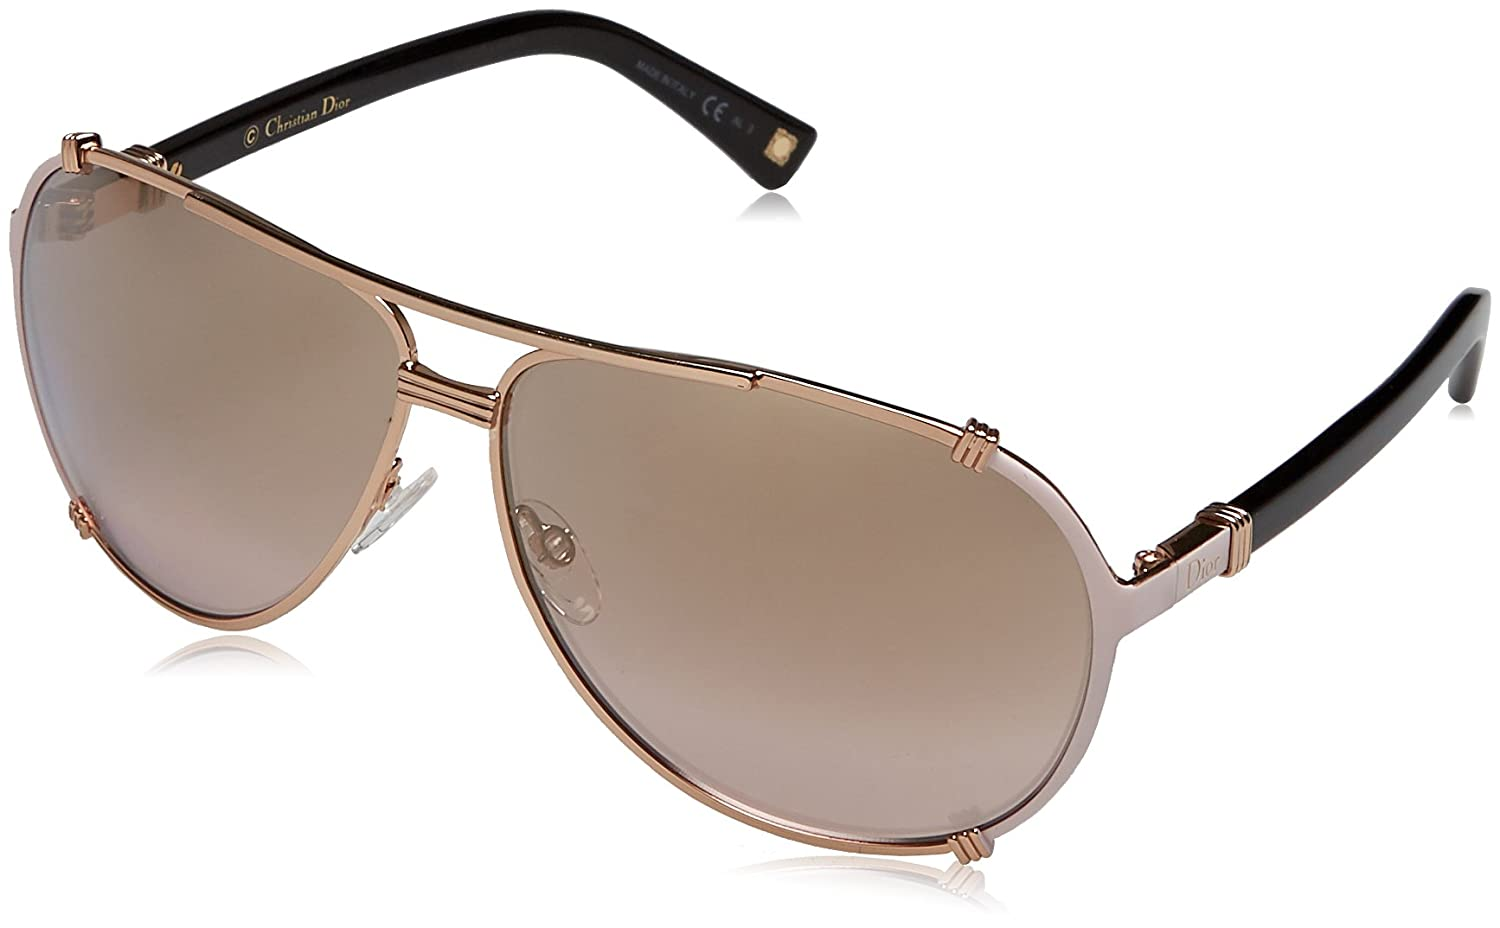 d635584ad3 Amazon.com  New Dior Sunglasses Womens DIORCHICAGO2 Pink HFBOR DIORCHICAGO2  63mm  Clothing